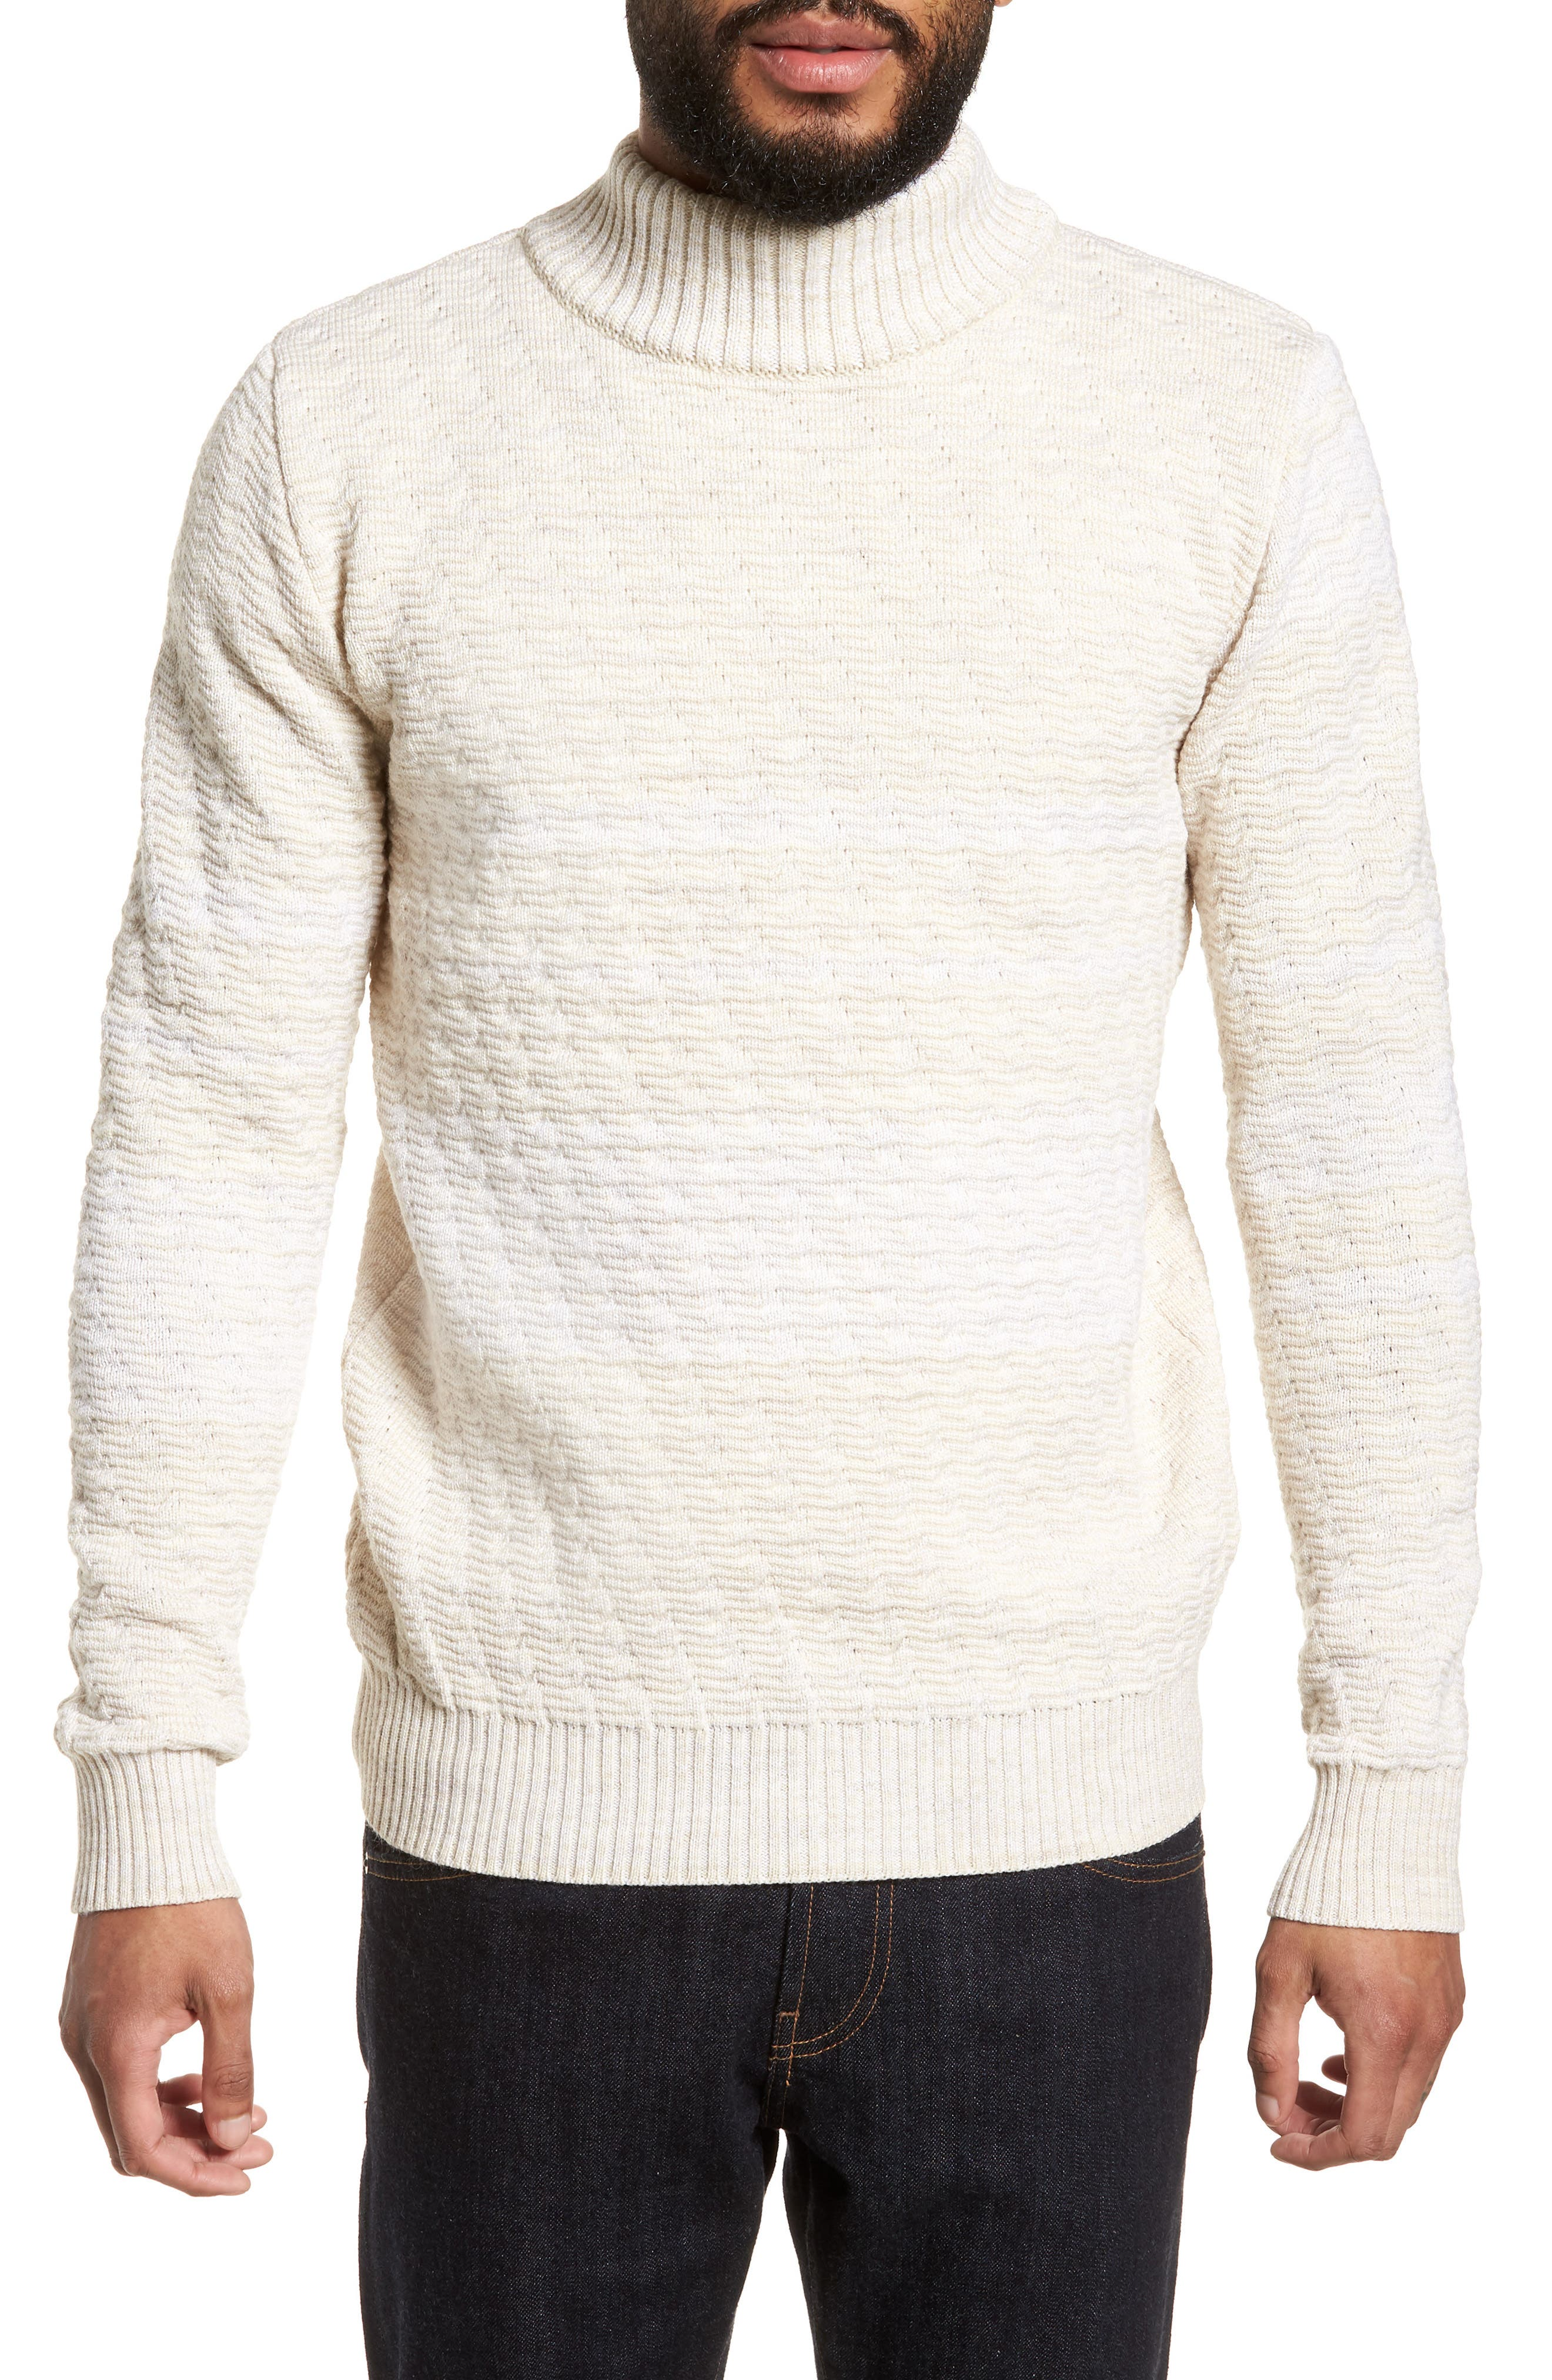 Evident Wool Turtleneck Sweater,                             Main thumbnail 1, color,                             Raw